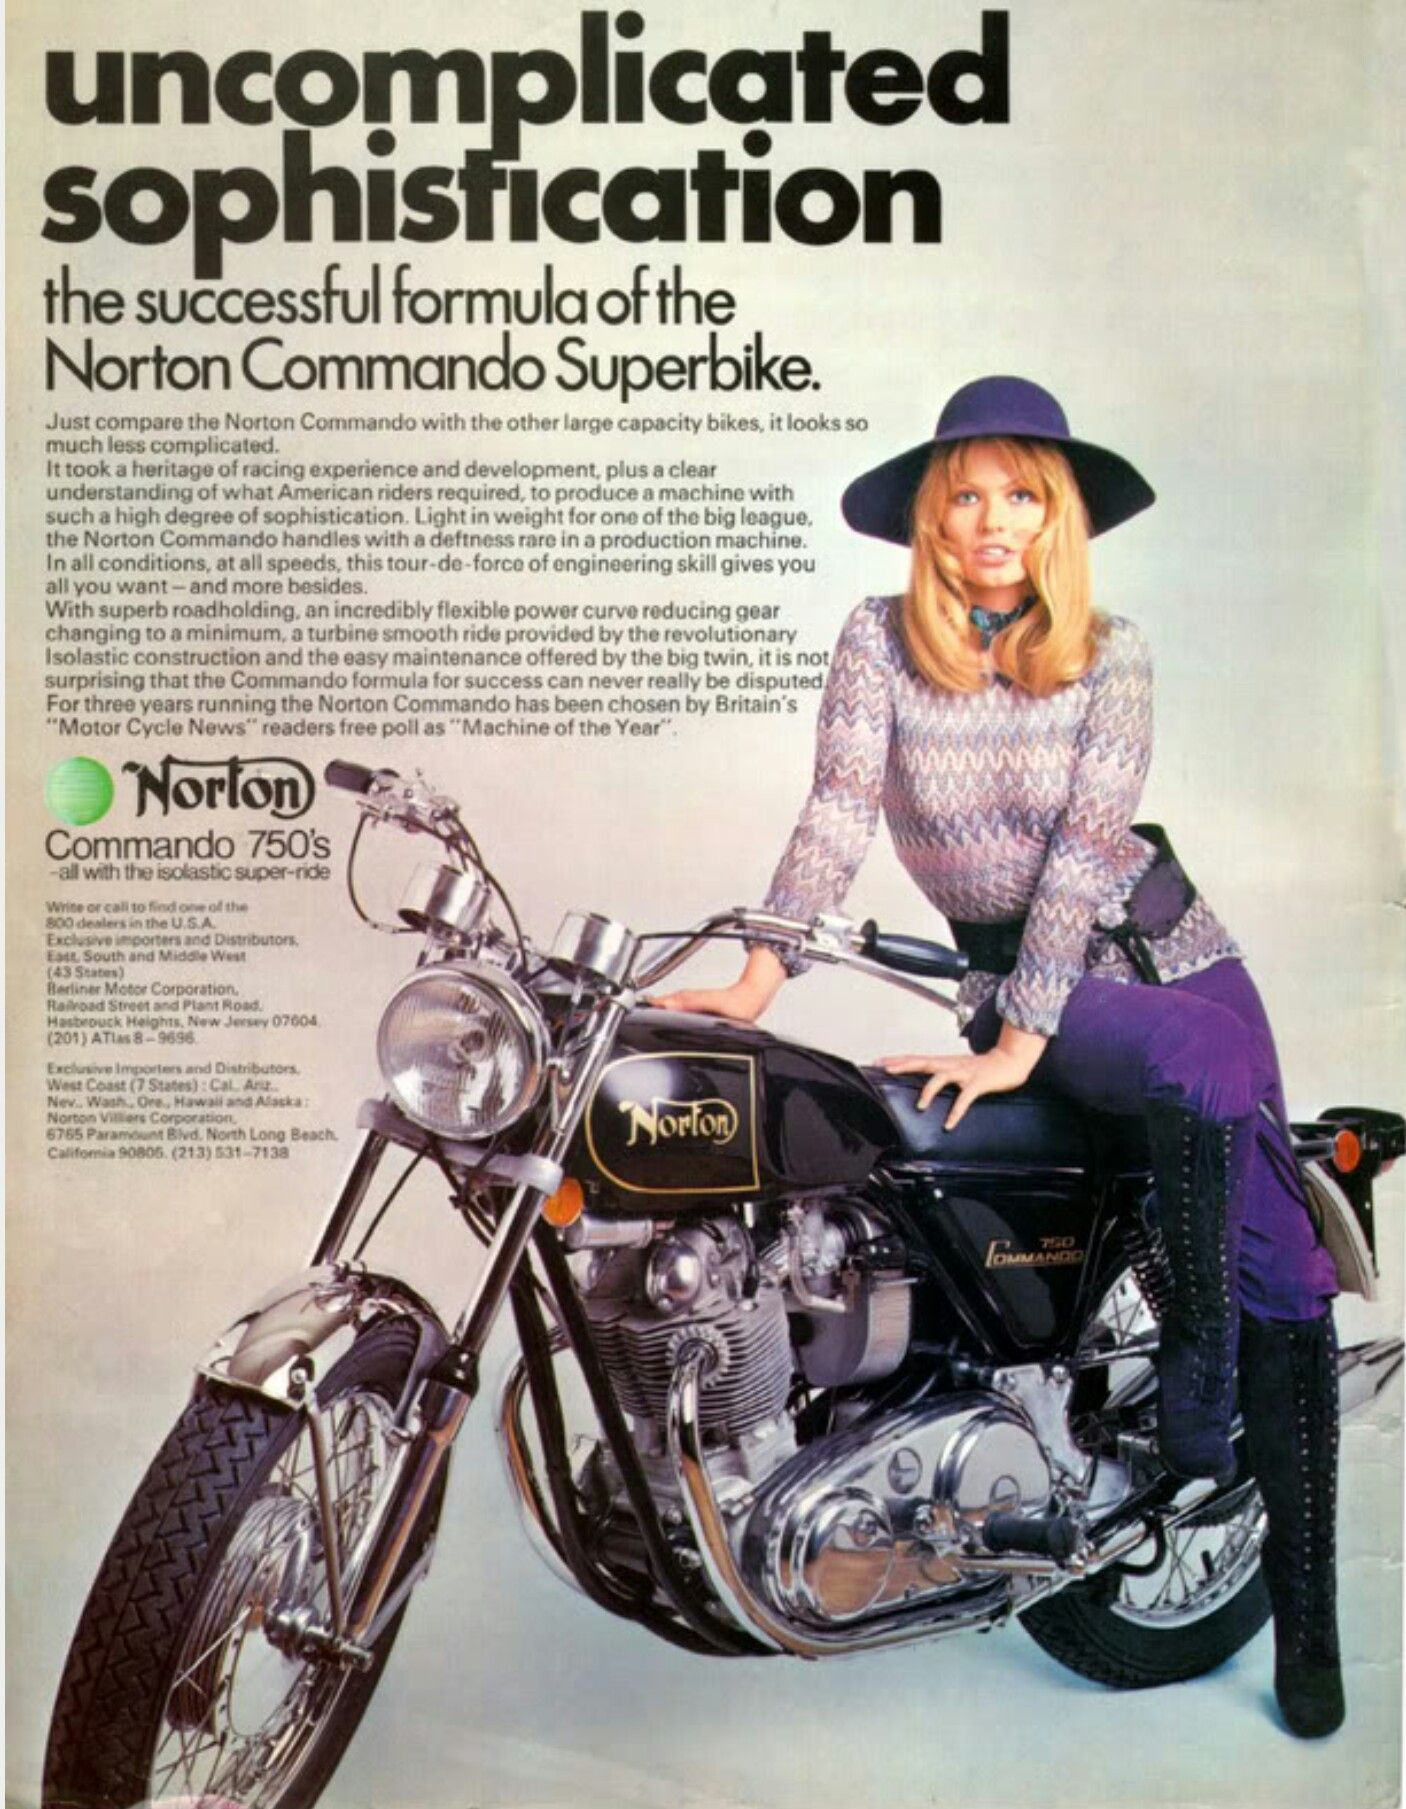 Pin by Monty MacLachlan on Old motorcycle ads   Norton motorcycle